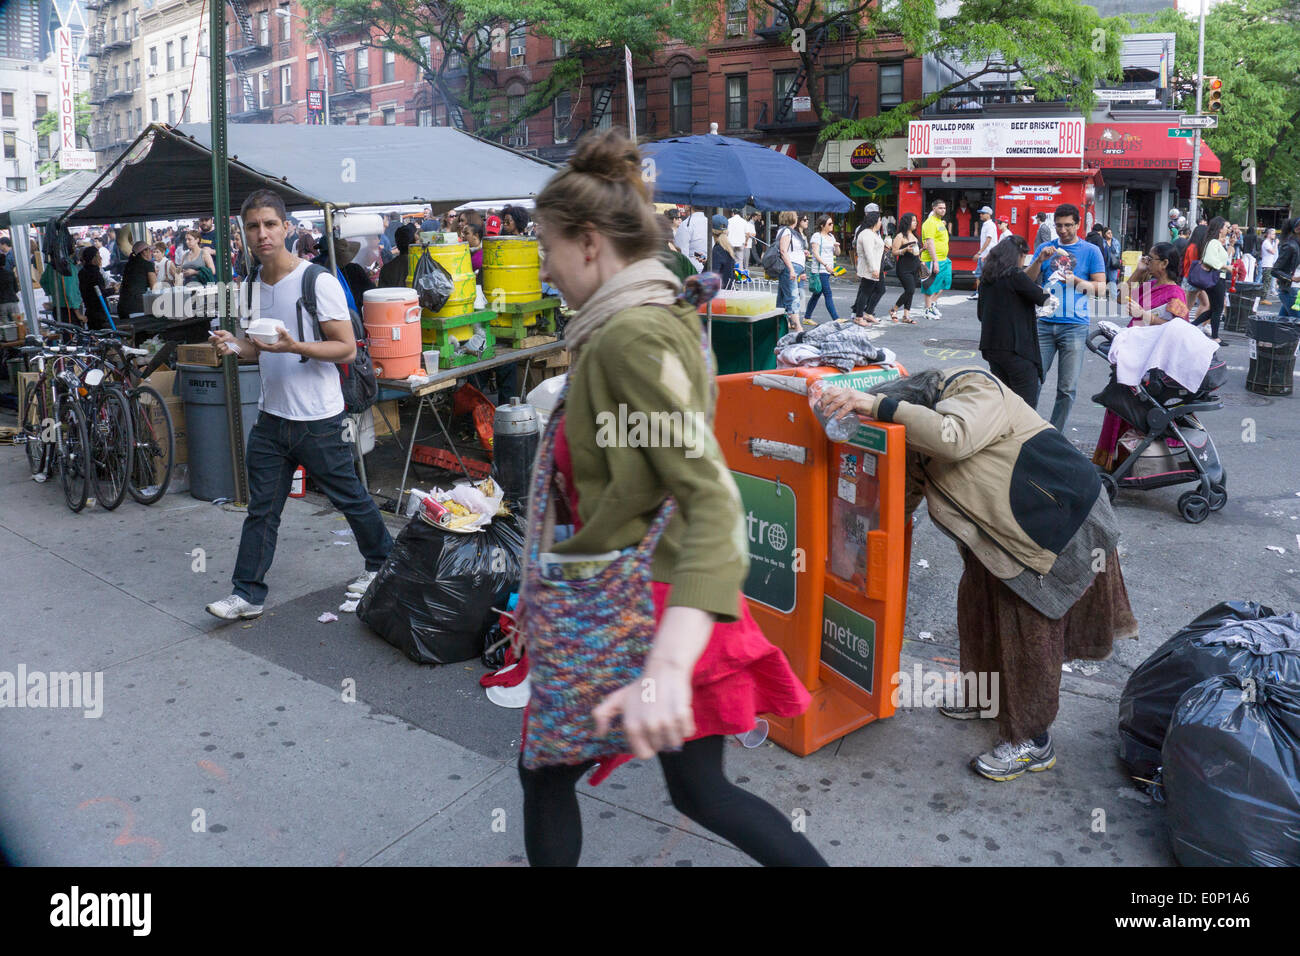 Hells Kitchen, New York City, Saturday, May 17 2014, USA: sidewalk scene behind the booths on opening day of 2 day weekend 9th Avenue International Food Festival. Inaugurated in 1973, the festival extends from 57th to 42nd street along Ninth Avenue in New York's Hells Kitchen neighborhood. Credit:  Dorothy Alexander/Alamy Live News - Stock Image